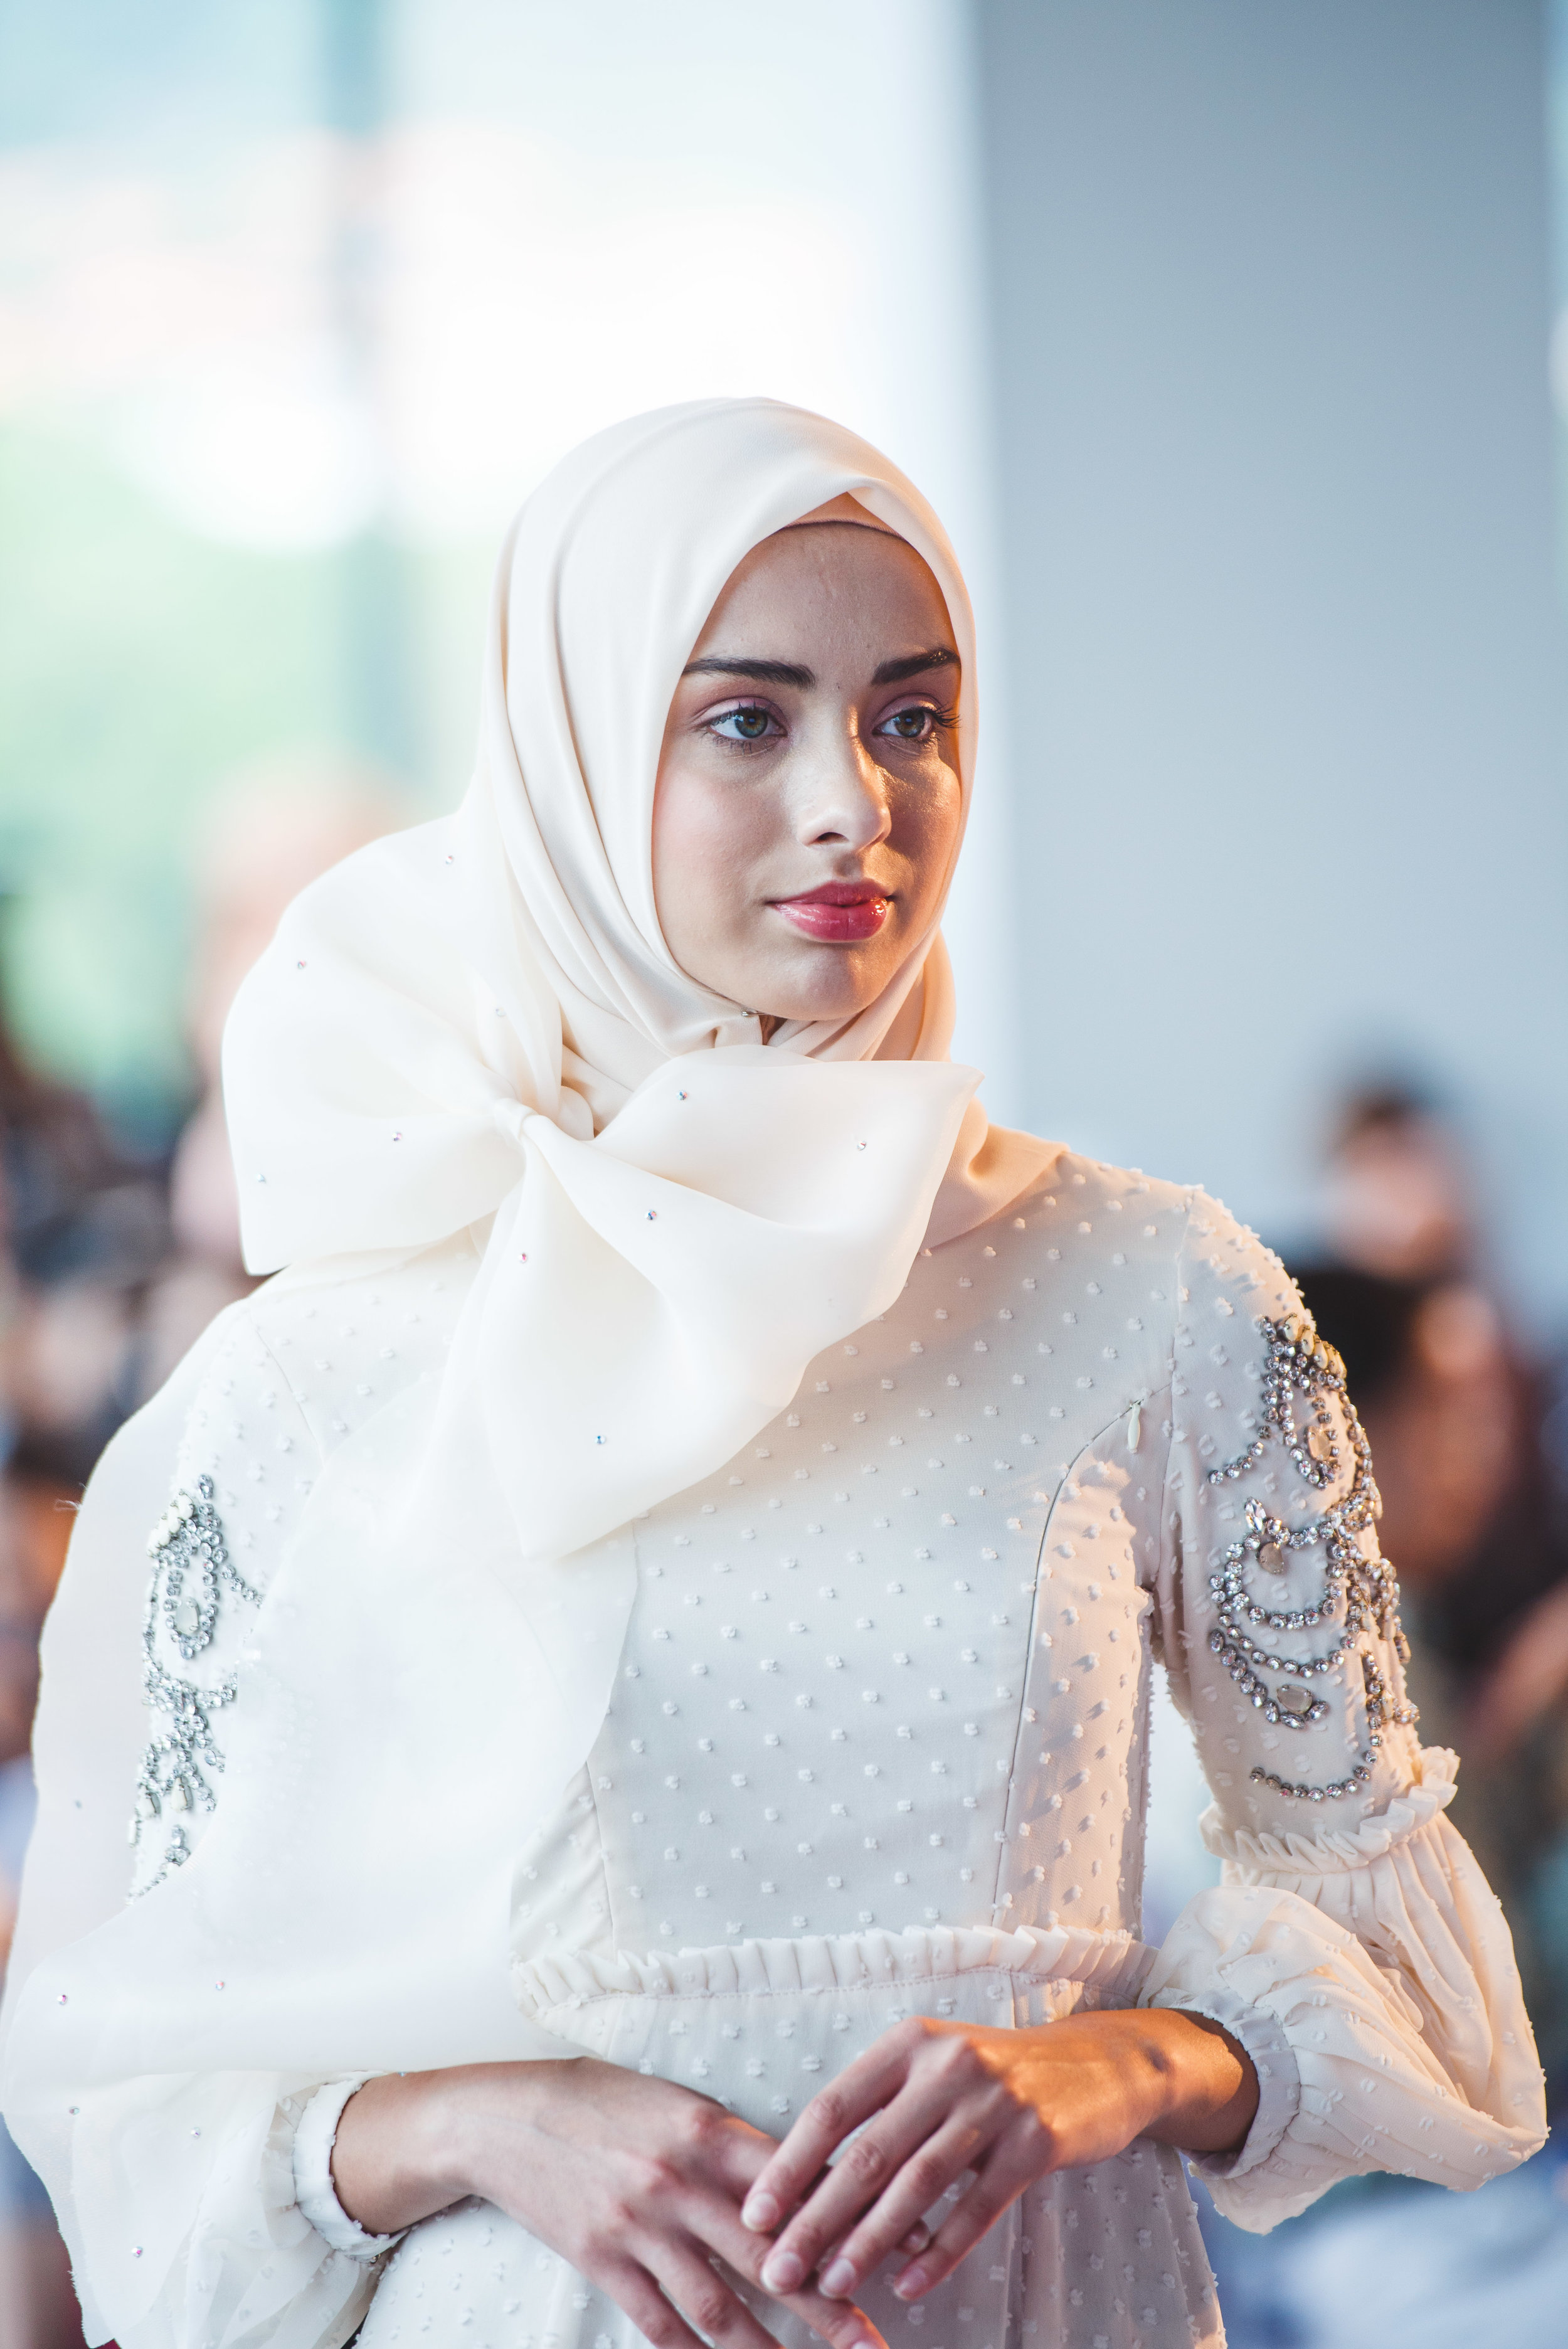 Zalora Raya 2018  - DDY_7951 - Photo by Saufi Nadzri.jpg